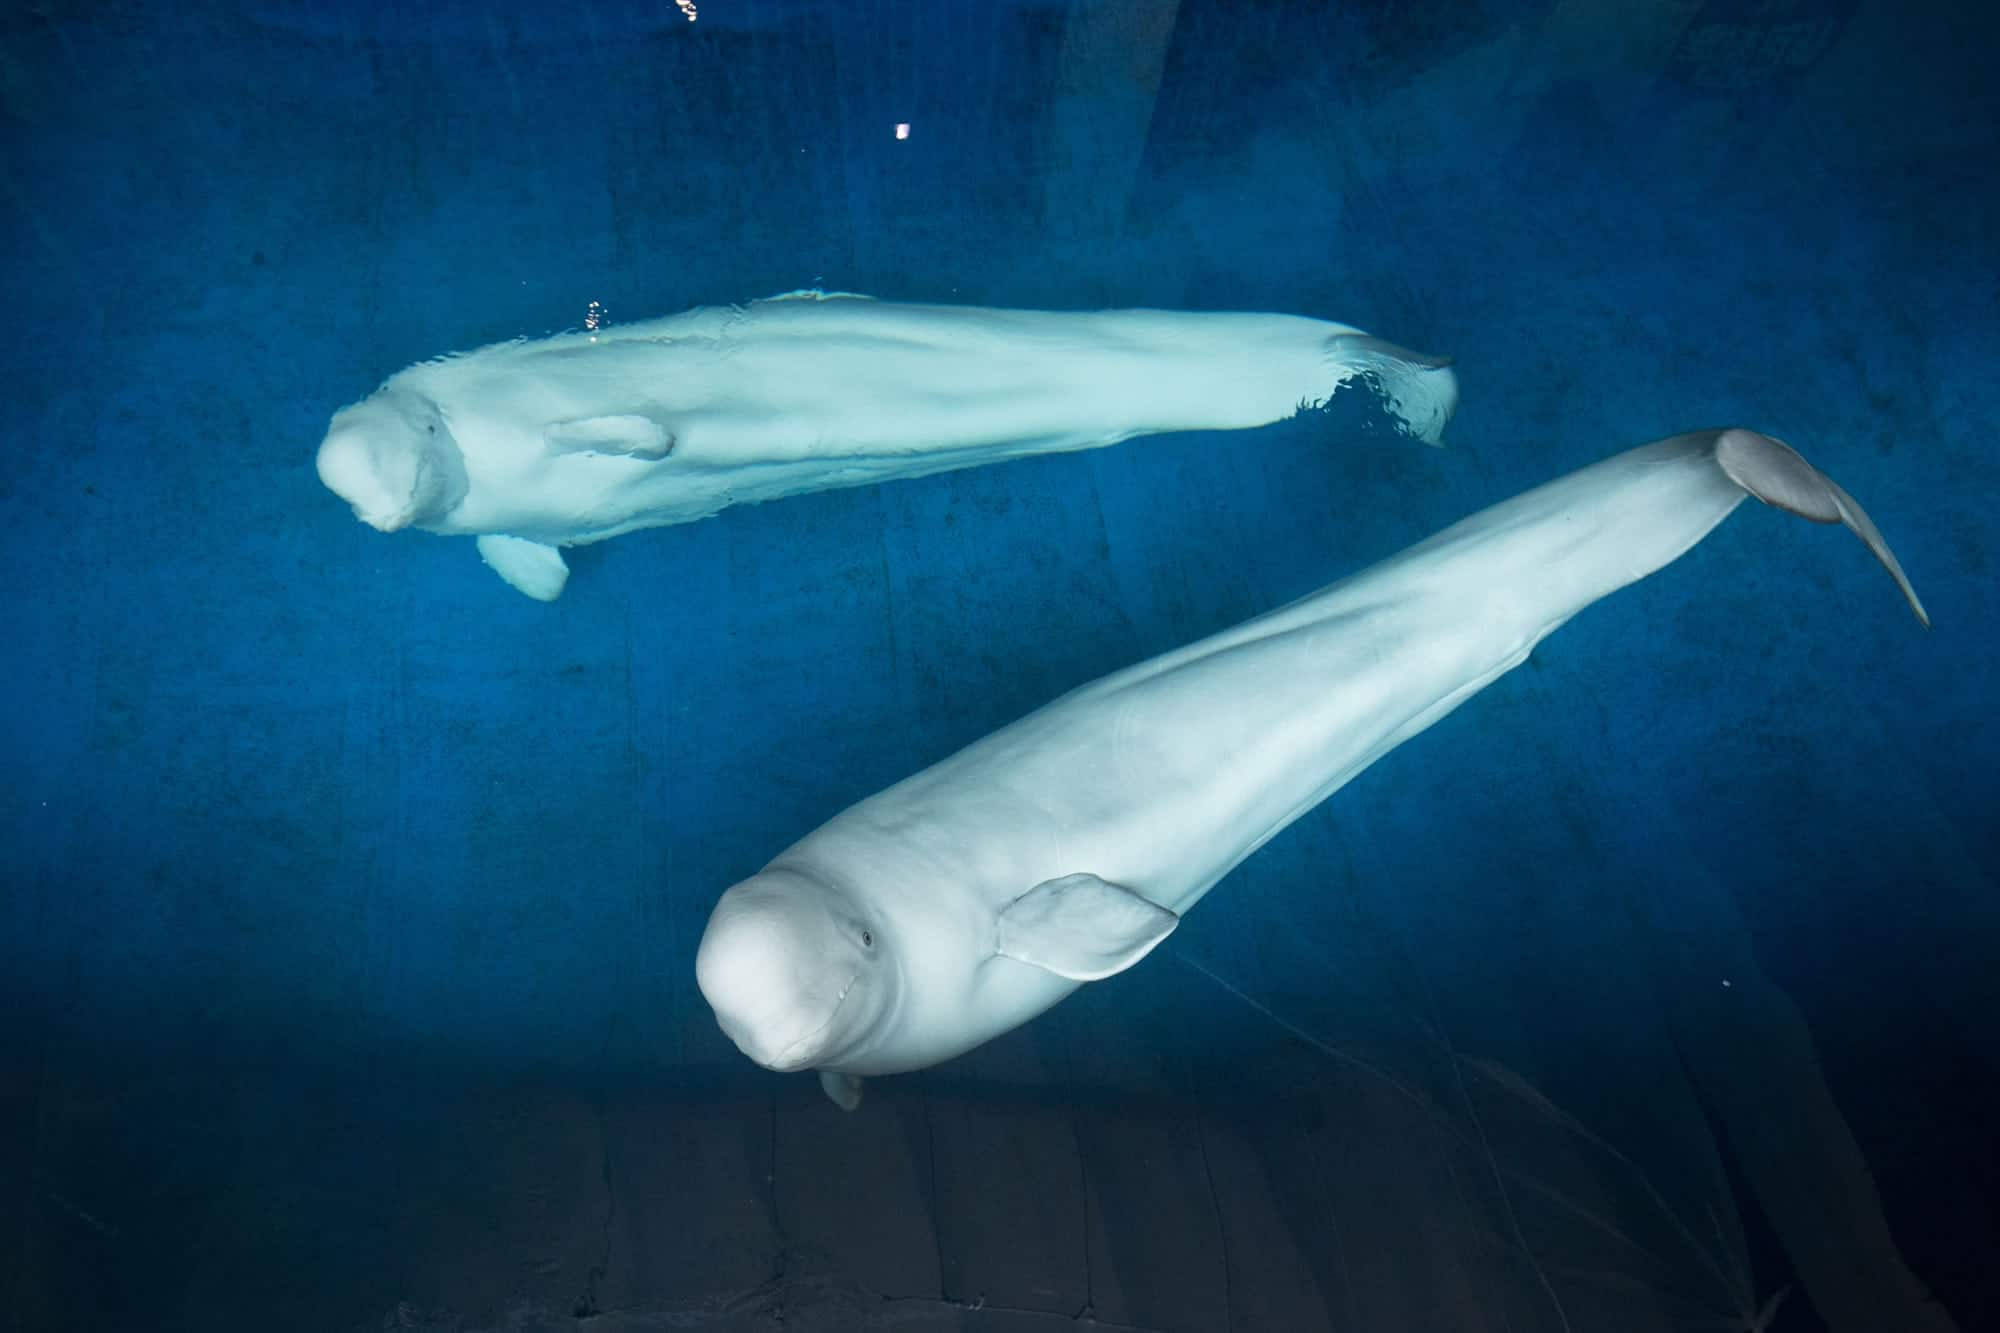 Preparations continue for release of beluga whales into sanctuary bay